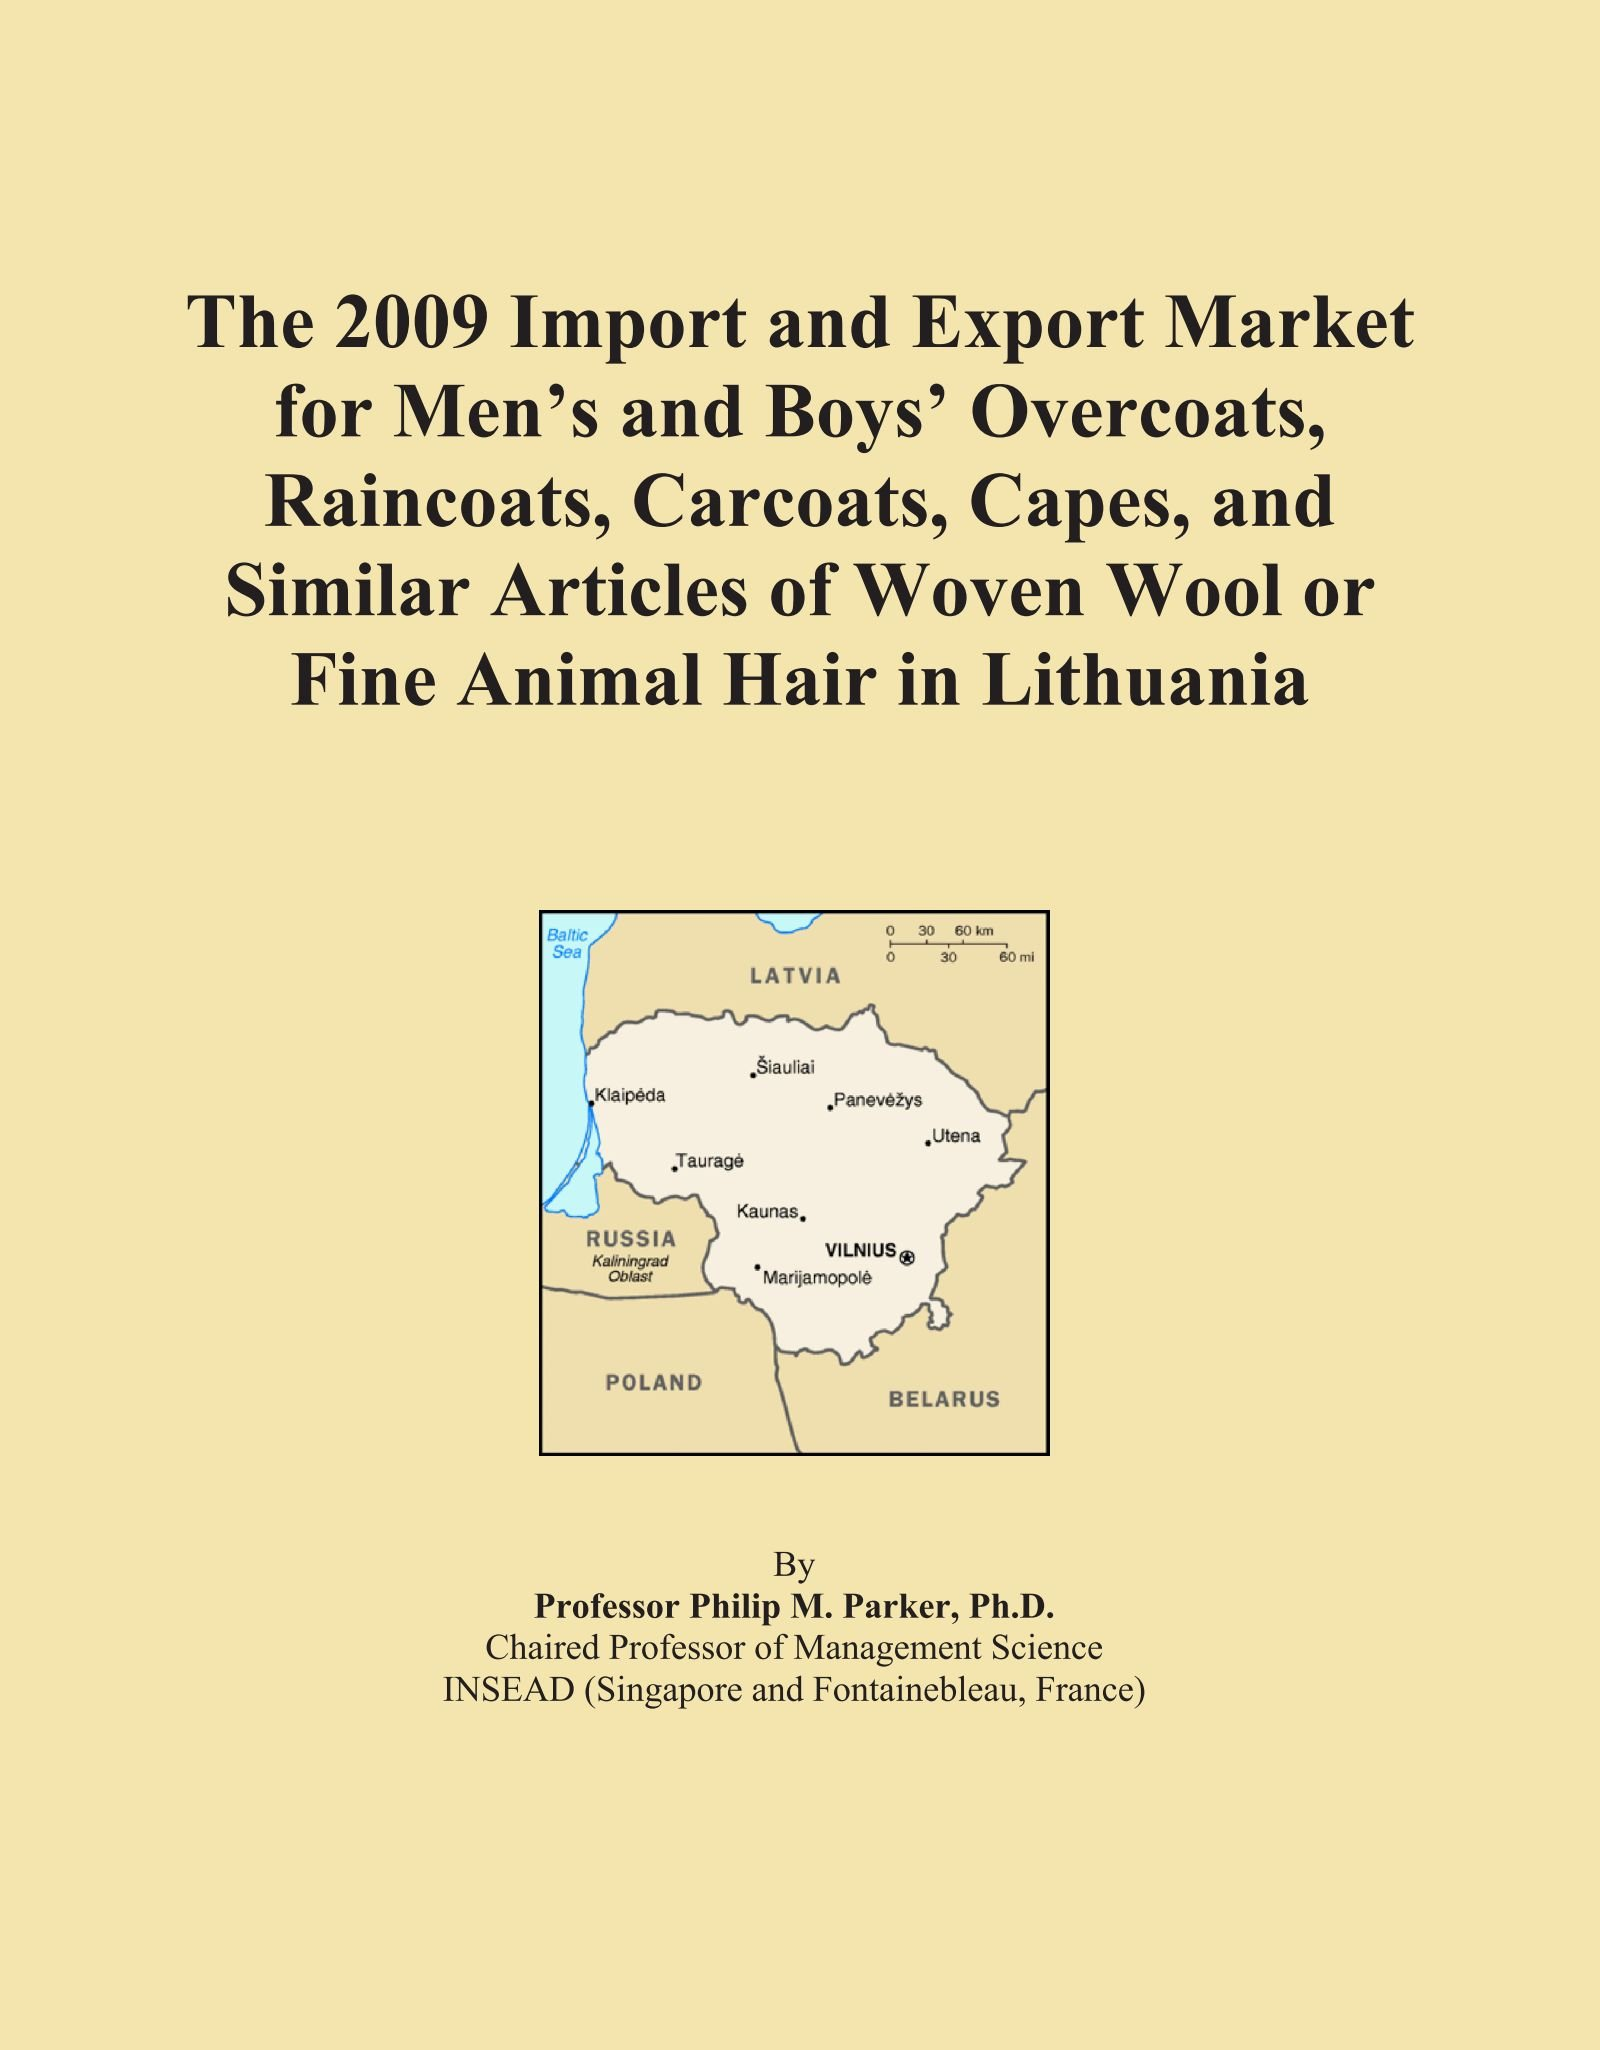 Download The 2009 Import and Export Market for Men's and Boys' Overcoats, Raincoats, Carcoats, Capes, and Similar Articles of Woven Wool or Fine Animal Hair in Lithuania ebook